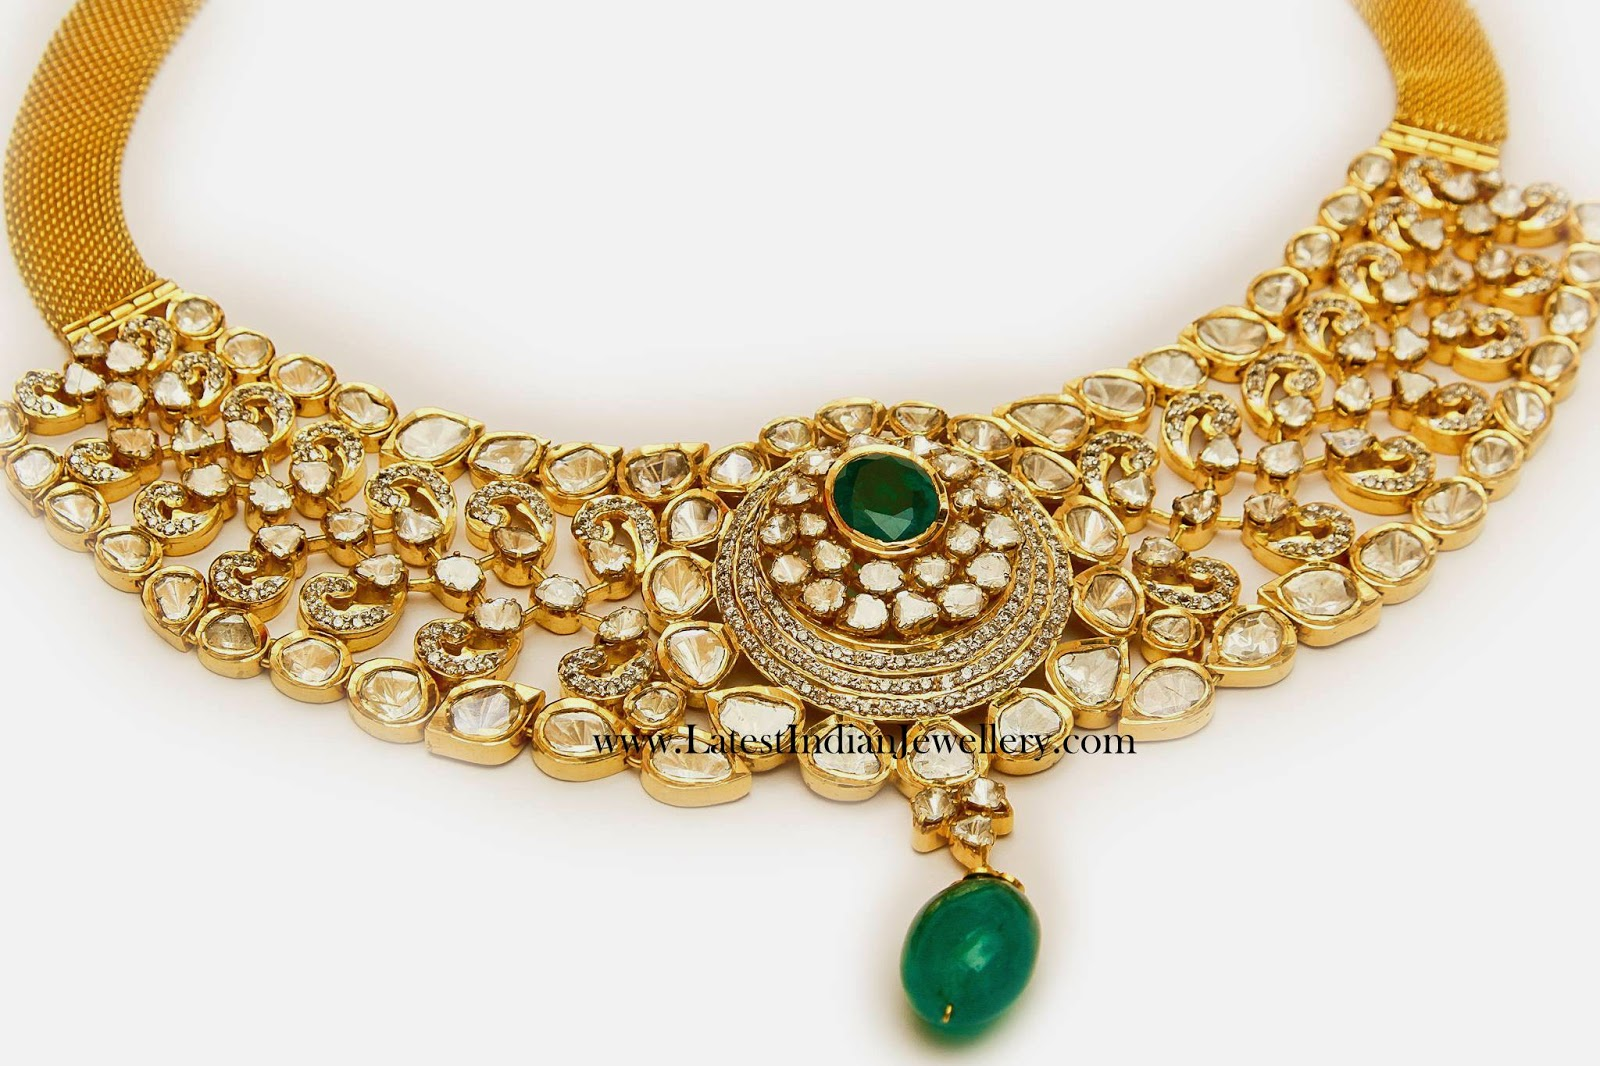 Polki Diamond Emerald Choker Necklace